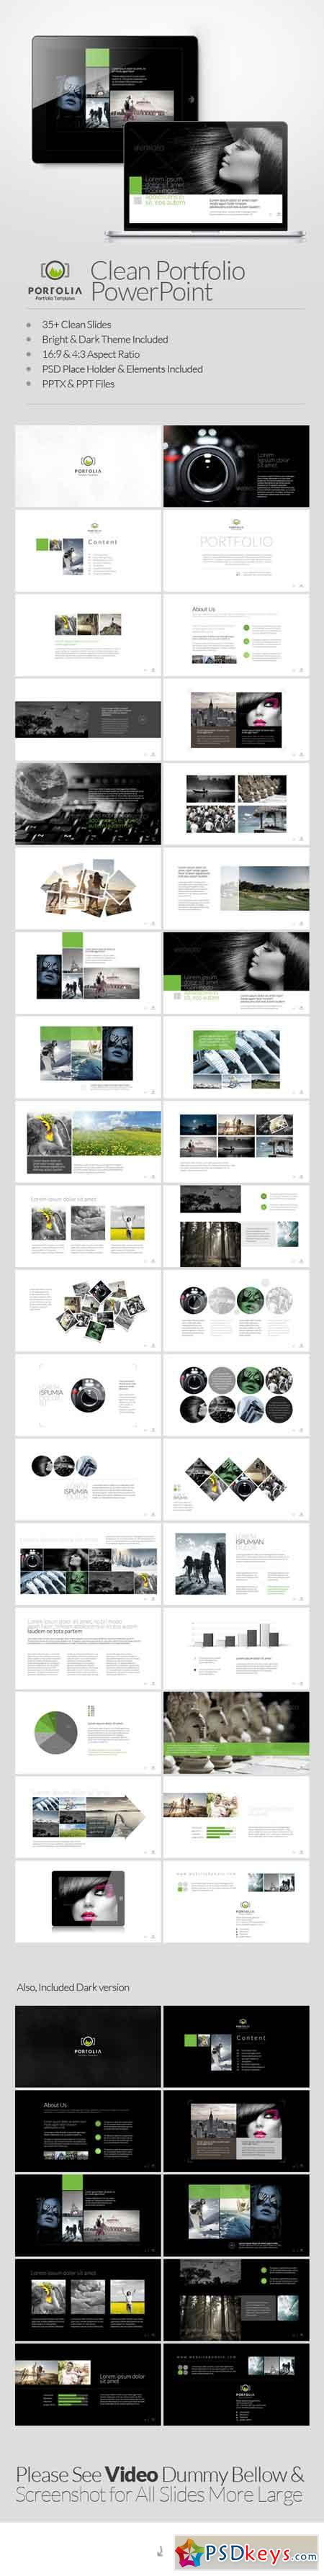 Portolia Multipurpose Clean Portfolio Powerpoint 6537310